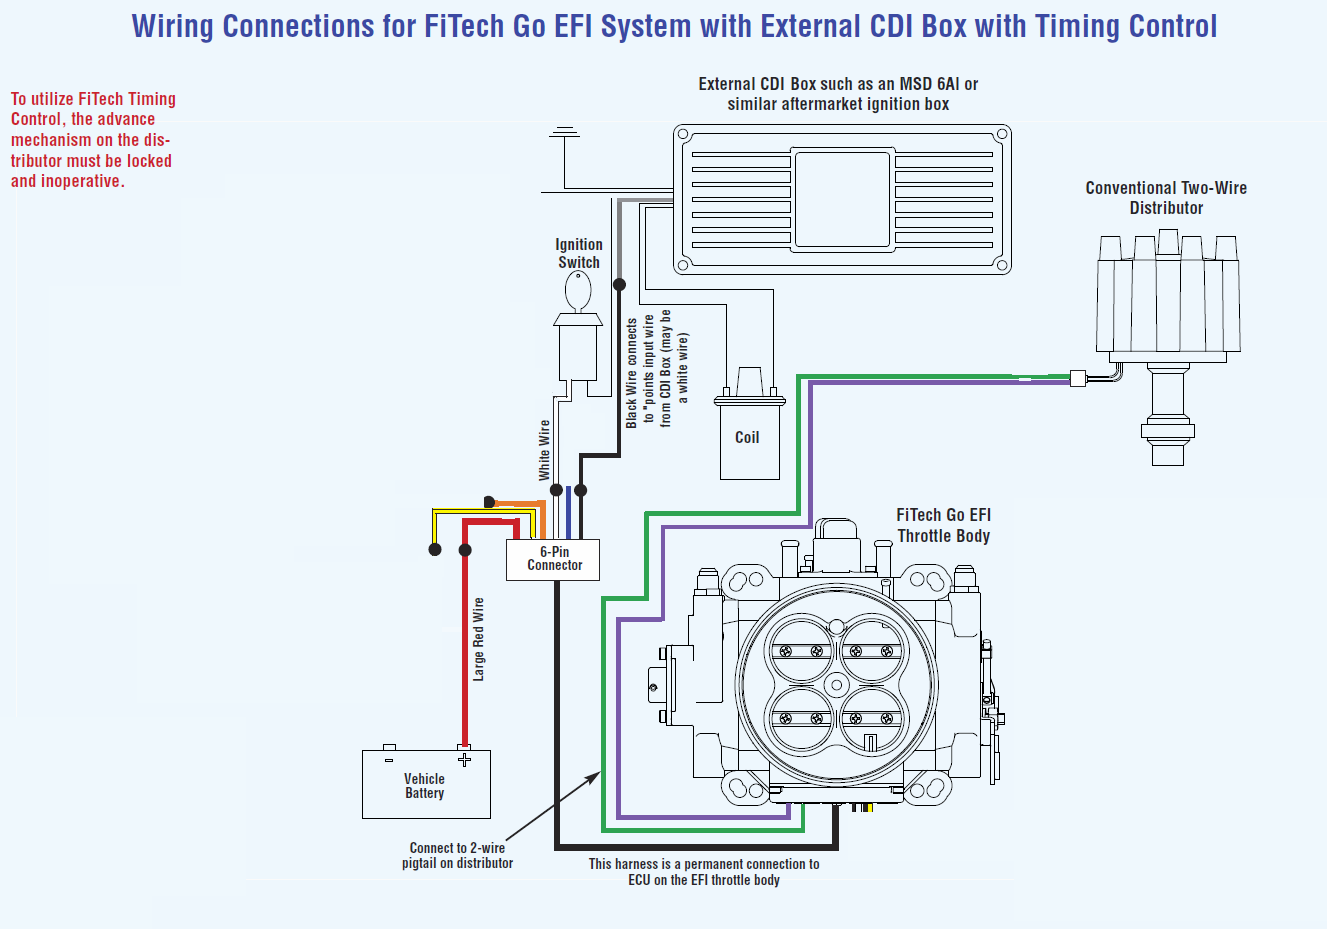 2wire Distributor Wiring Diagram Msd 6al Connected To ... on